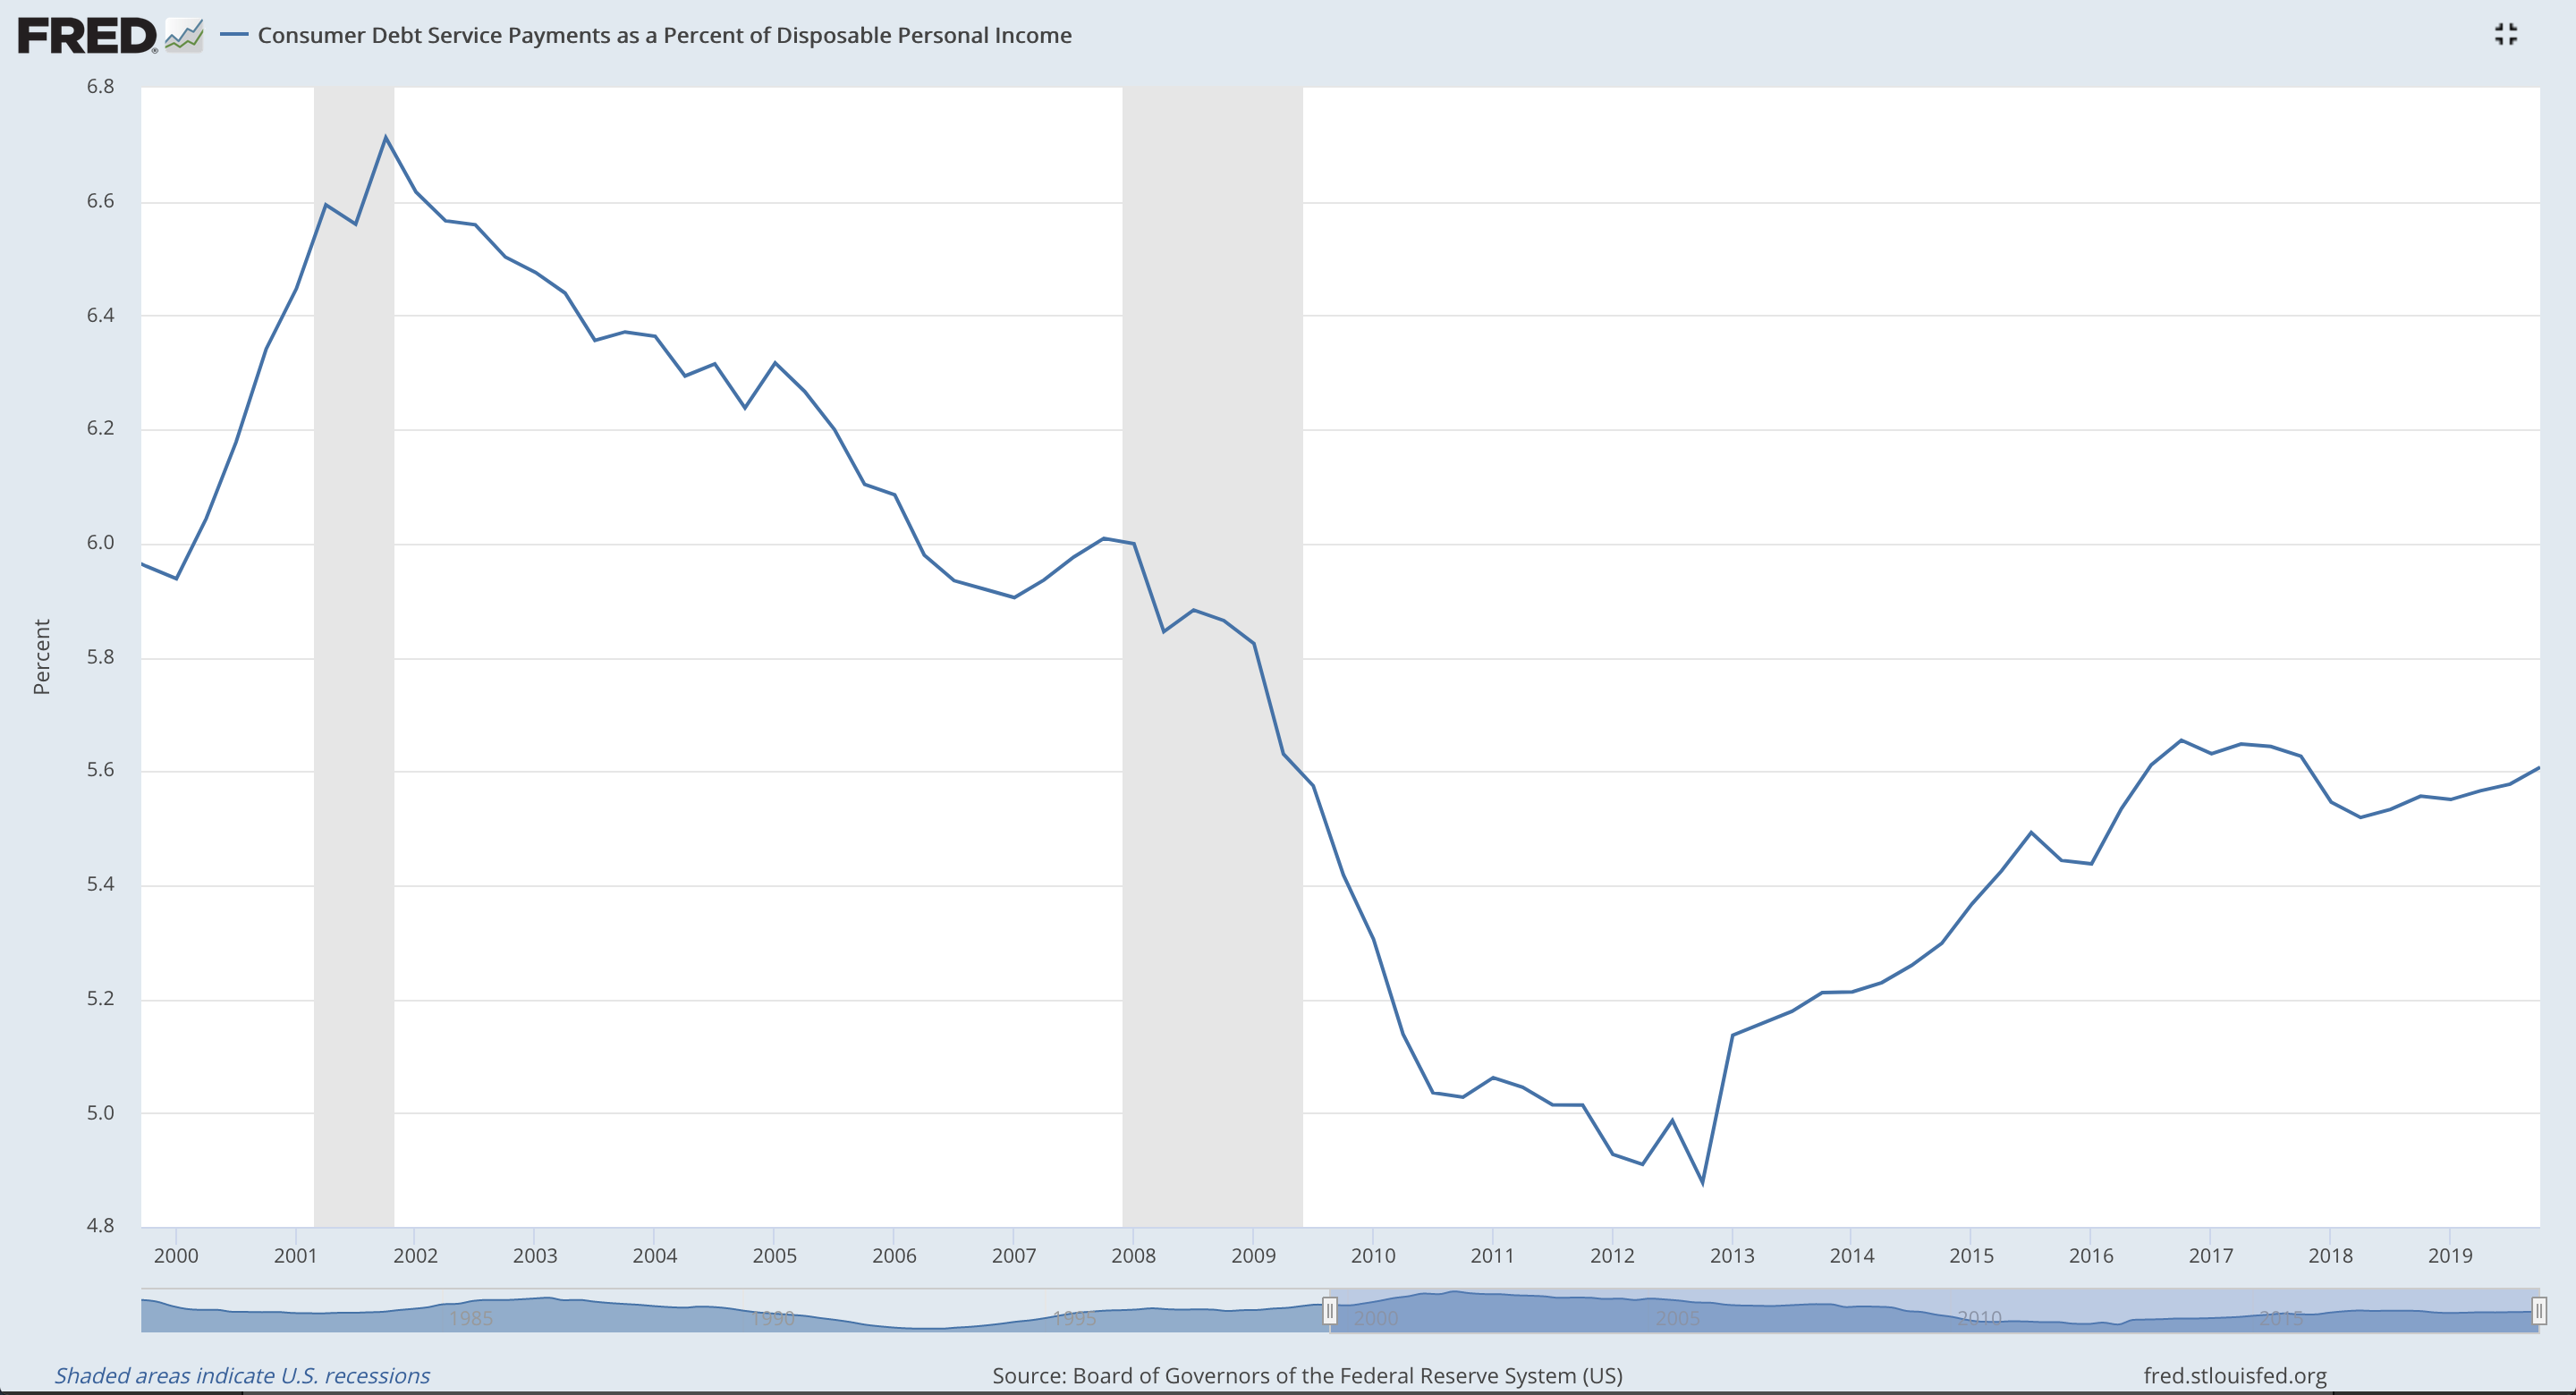 Consumer Debt Service Payments as a Percentage of Disposable Income